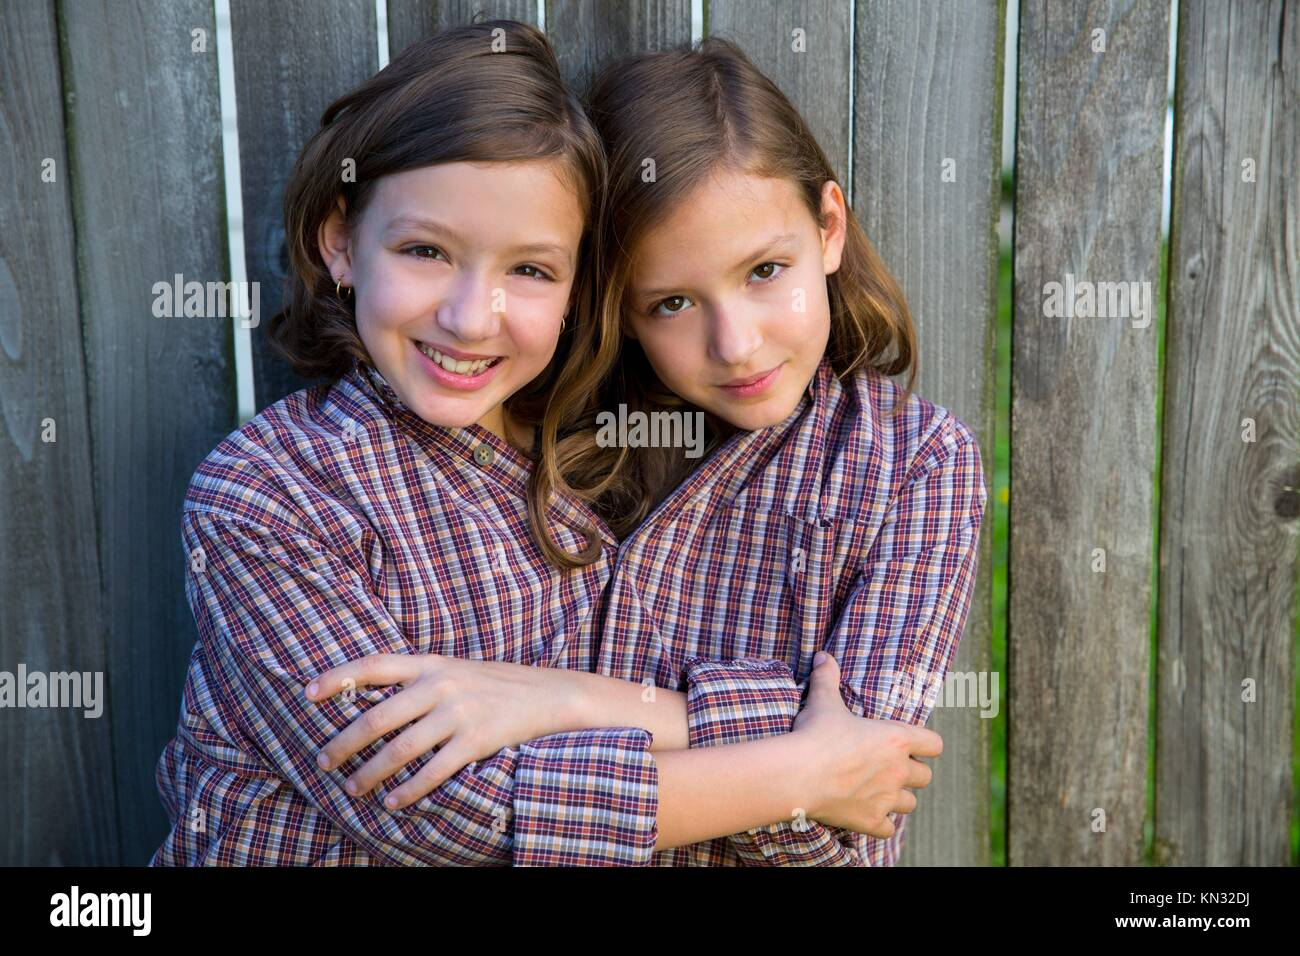 twin girls fancy dressed up pretending be siamese with his father shirt. - Stock Image